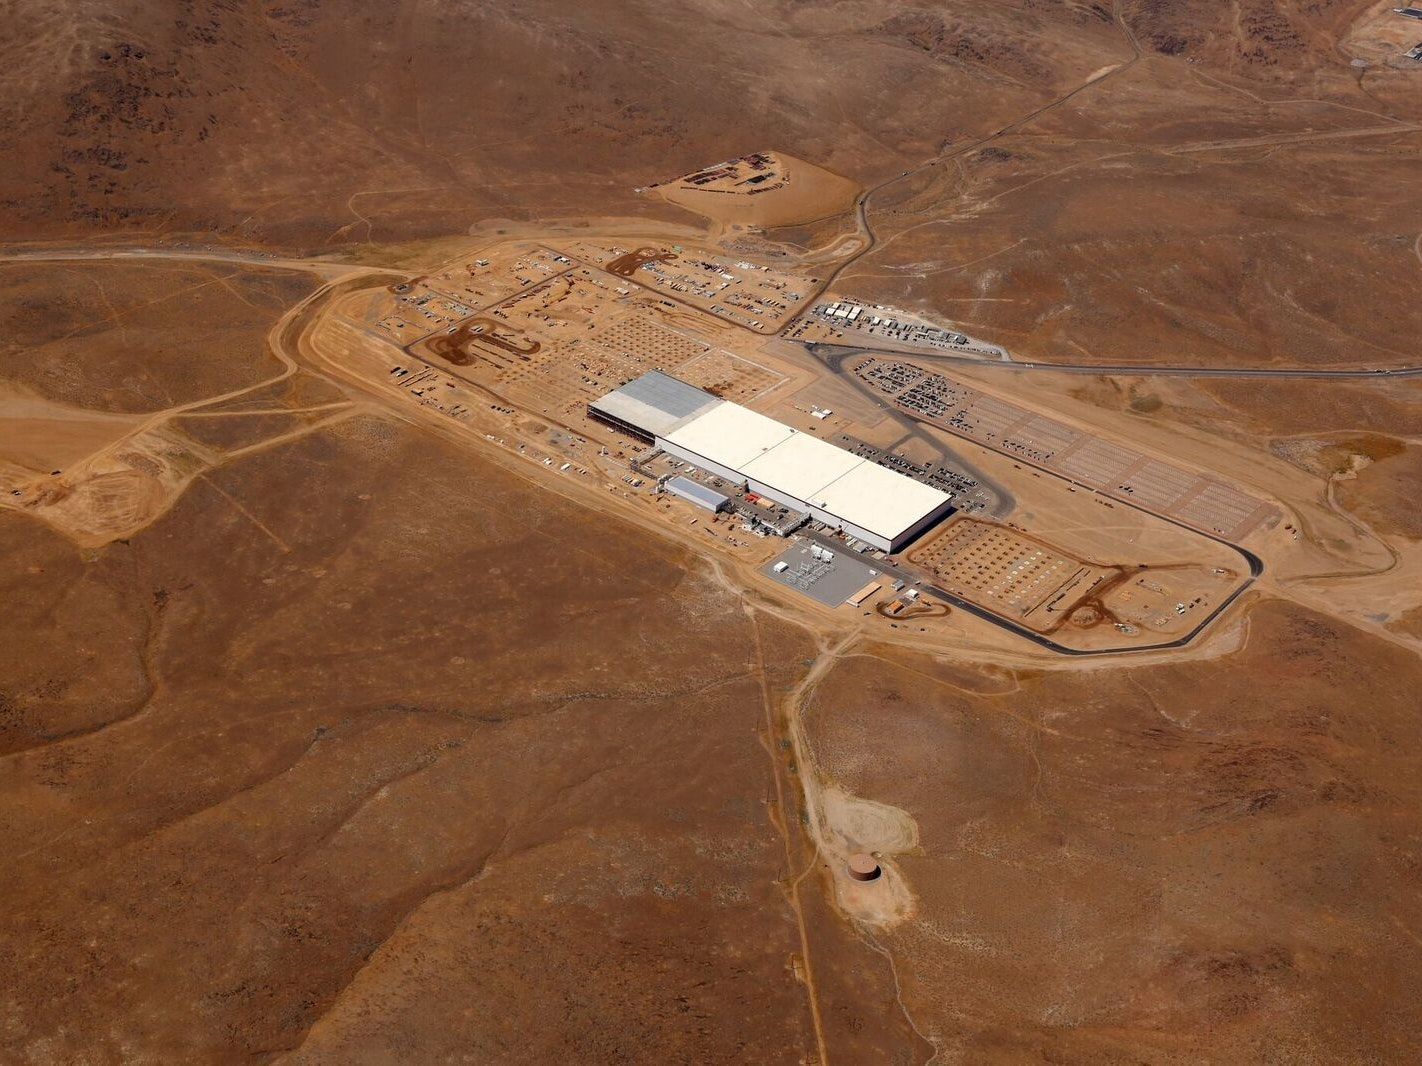 Inside the Gigafactory Ahead of the Rager